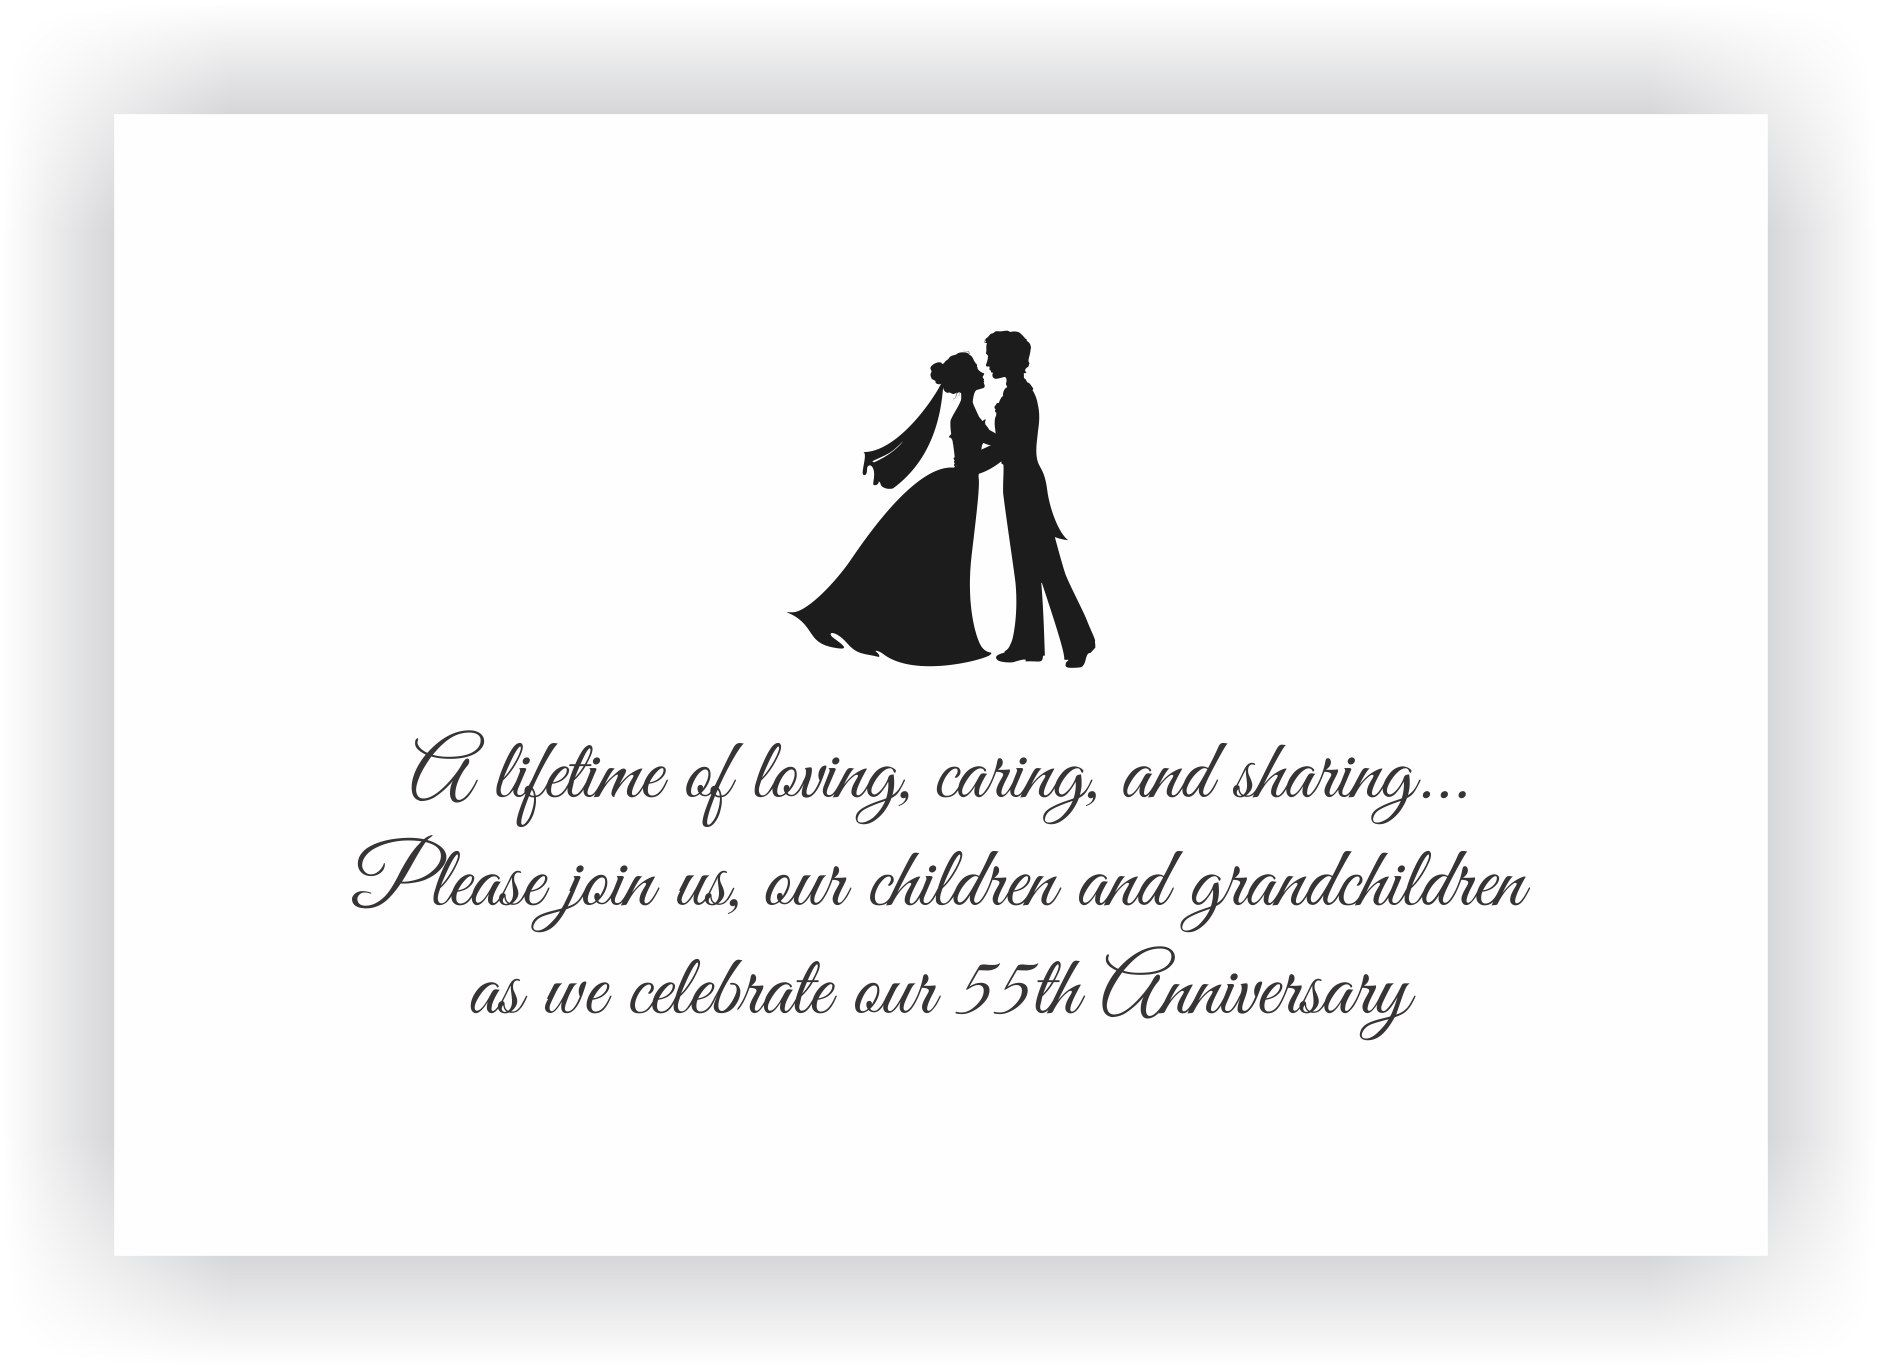 Marriage anniversary invitation messages invitation of wedding marriage anniversary invitation messages invitation of wedding anniversary in delhi chococraft stopboris Image collections